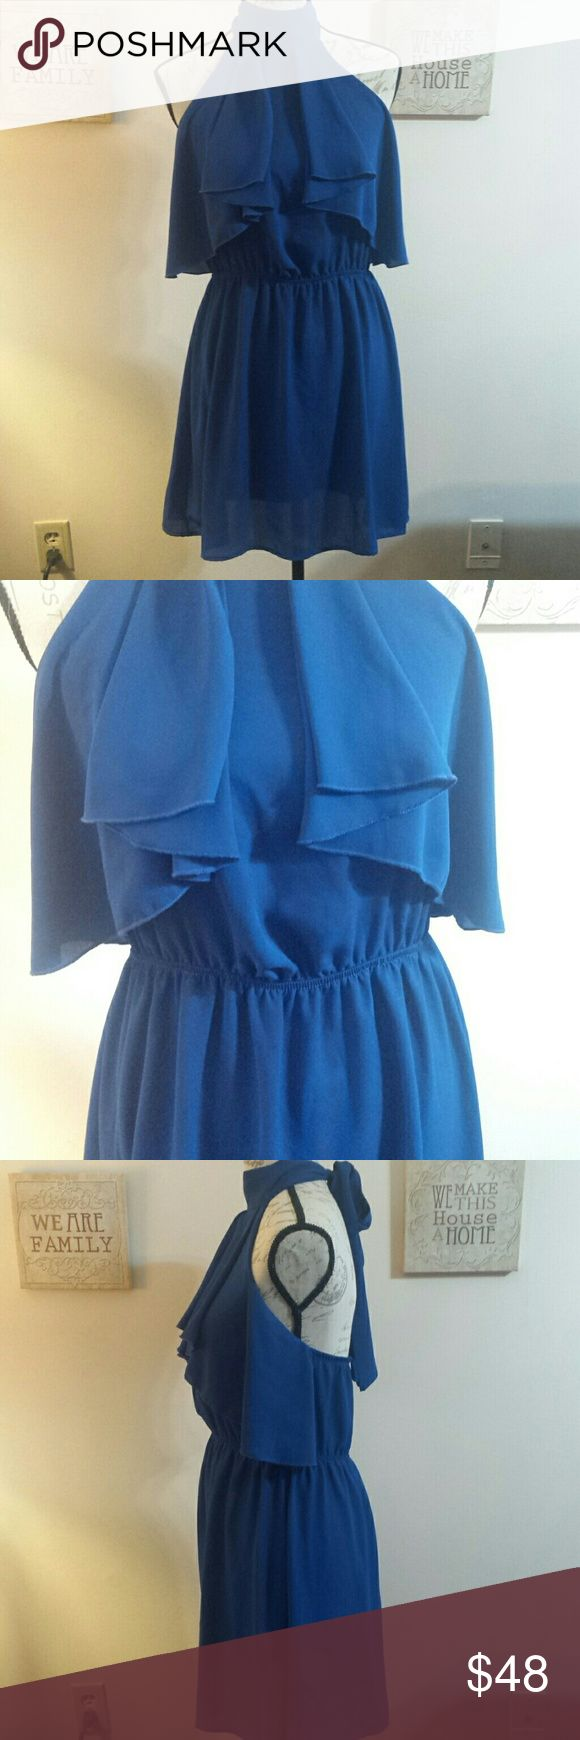 New dress Nordstroms so cute Beautiful blue halter dress you will love worn once for few hours like brand new .... great steal .... great for holidays arancia Dresses